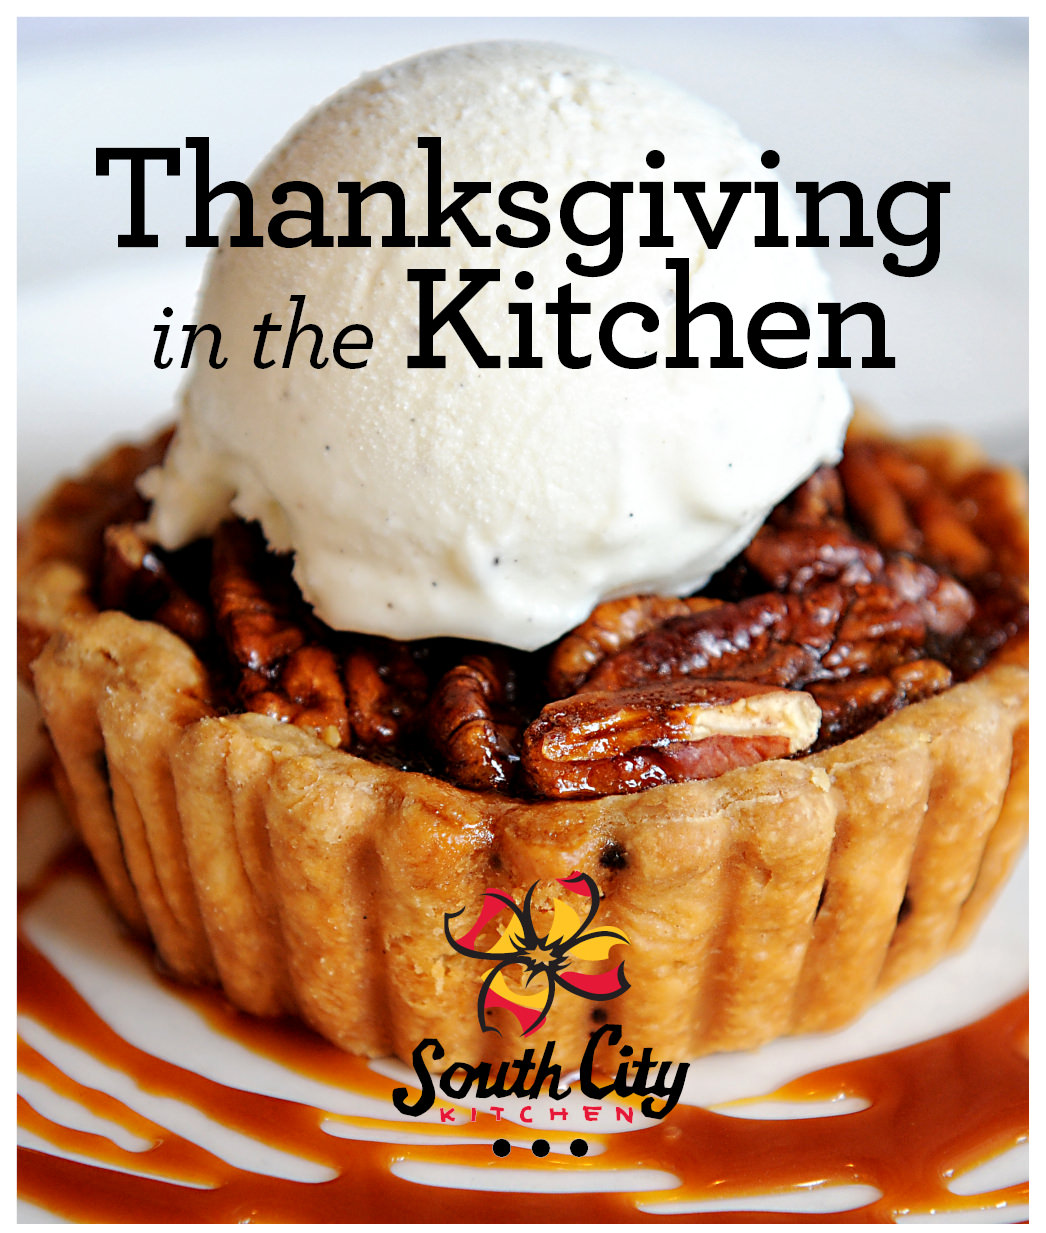 South City Kitchen Thanksgiving Dinner